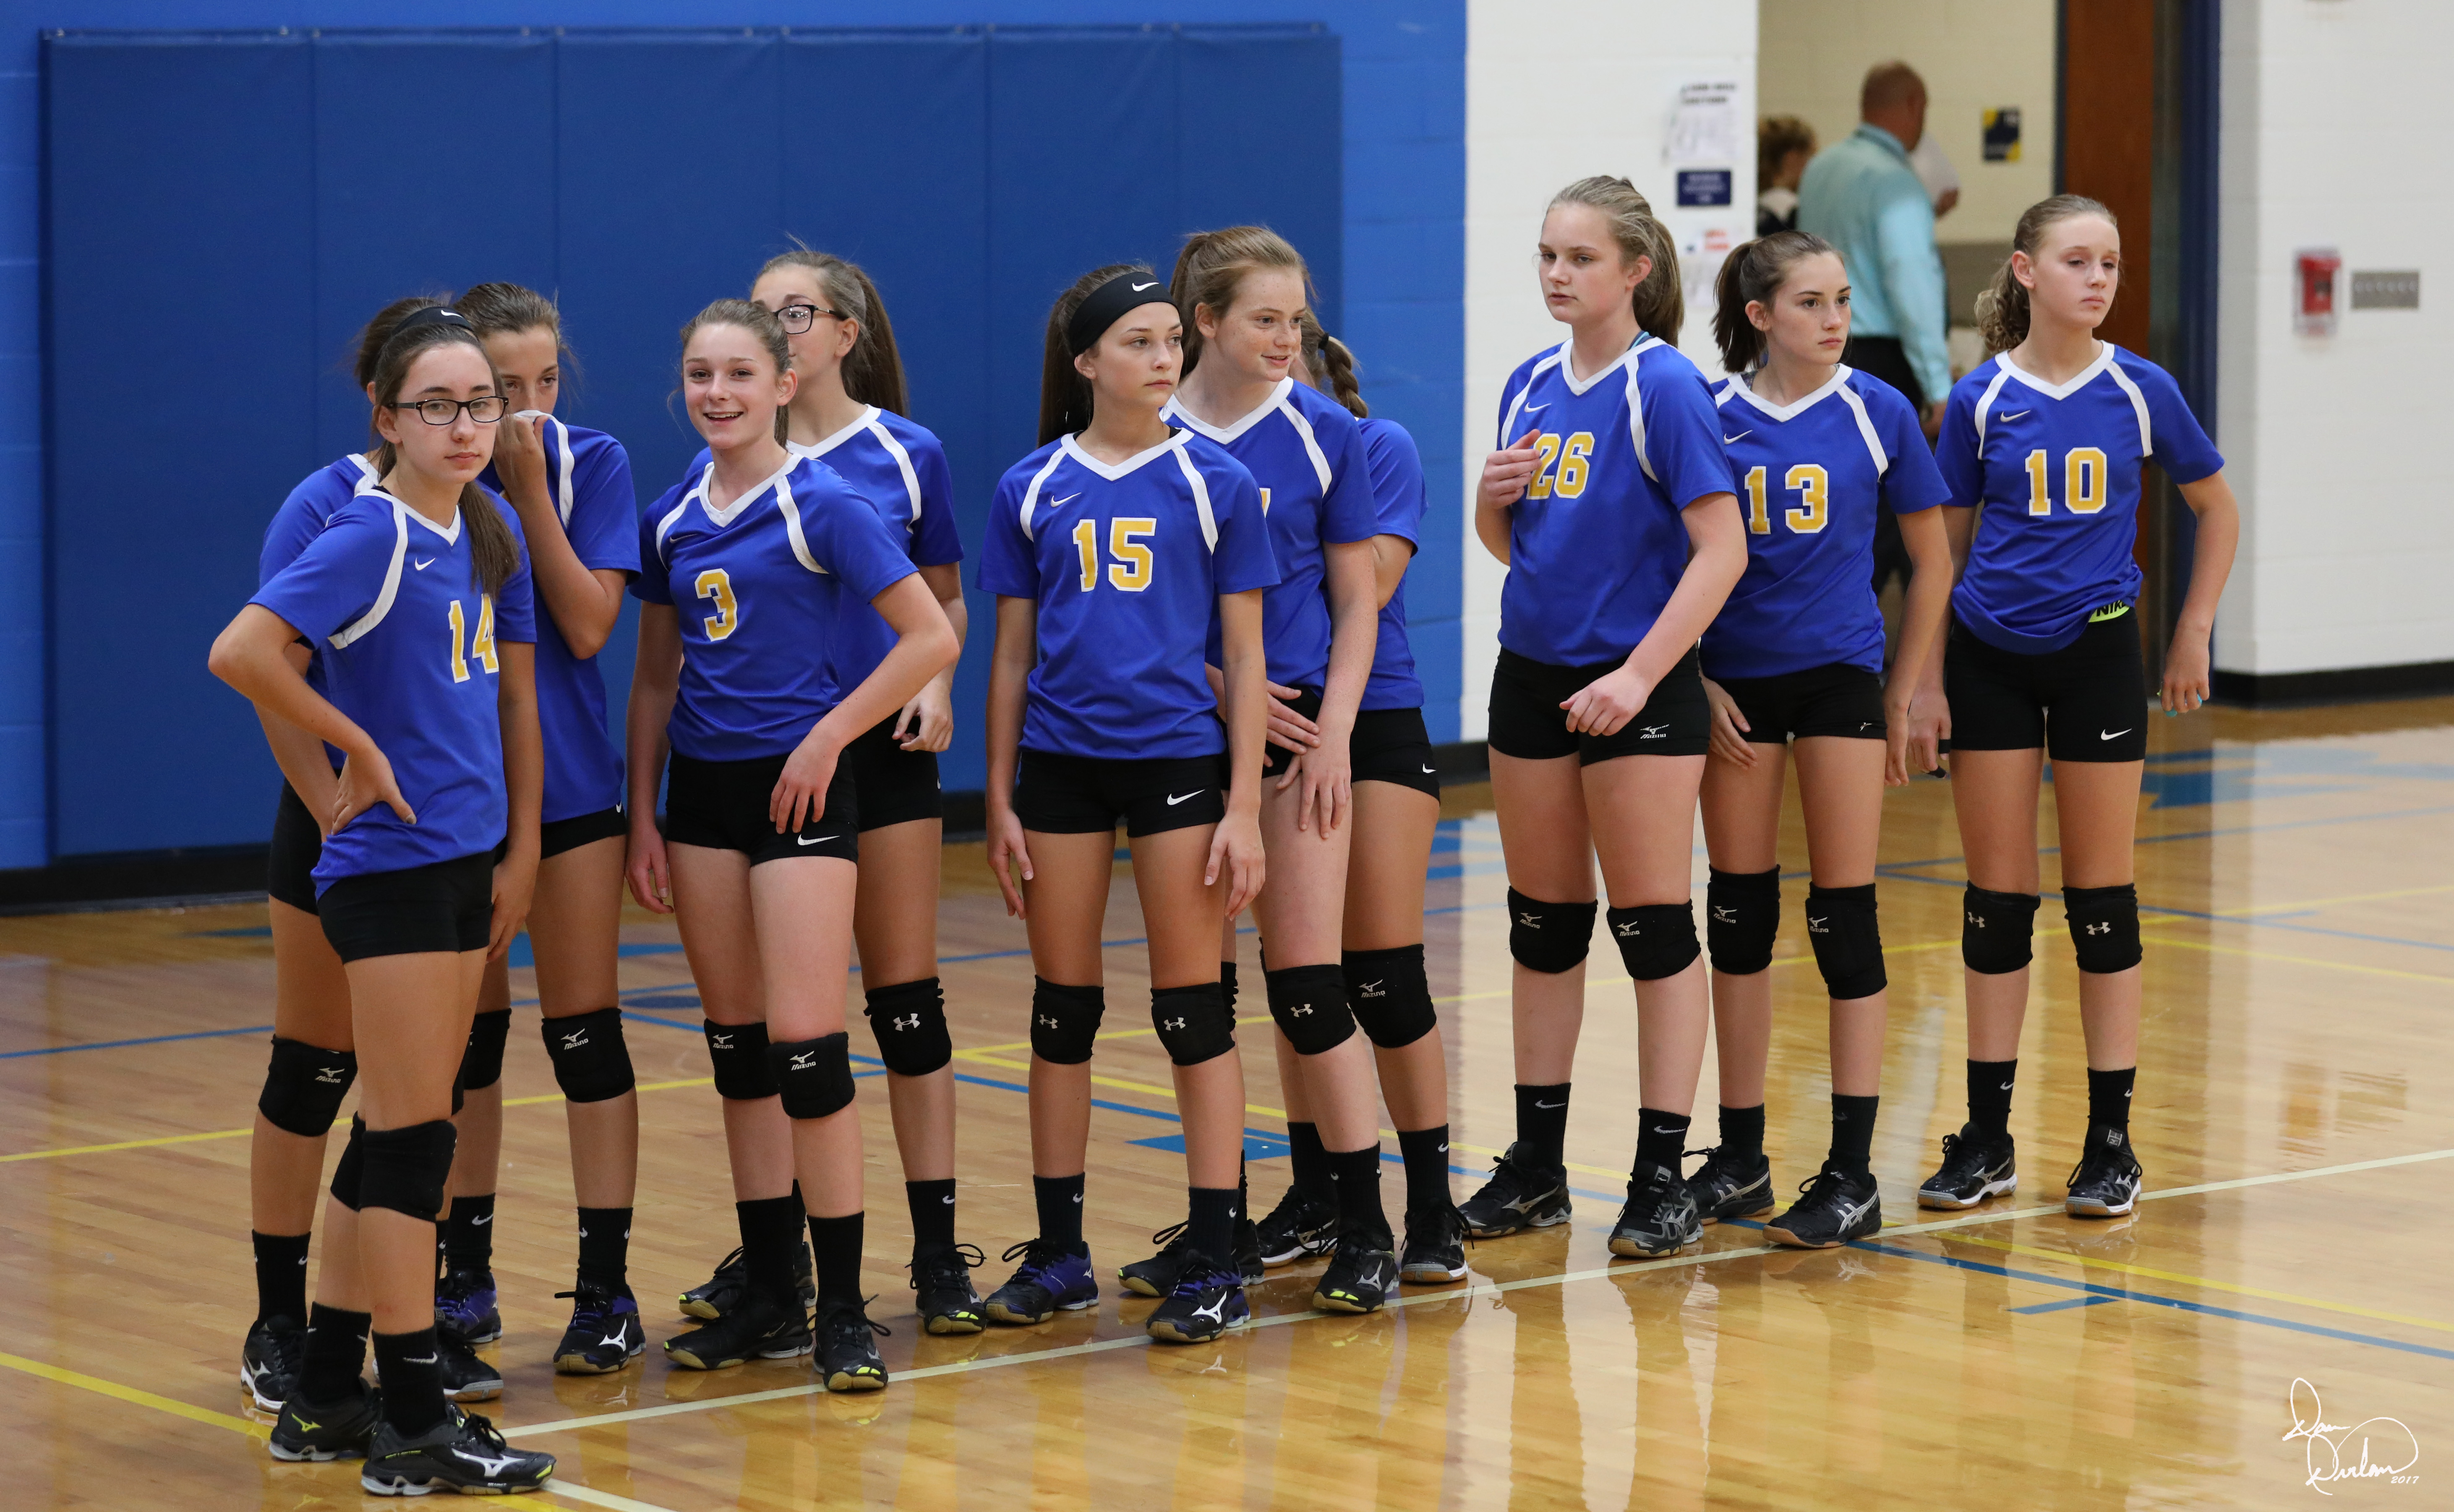 Congrats to the 8th grade Volleyball – SBC CHAMPS!